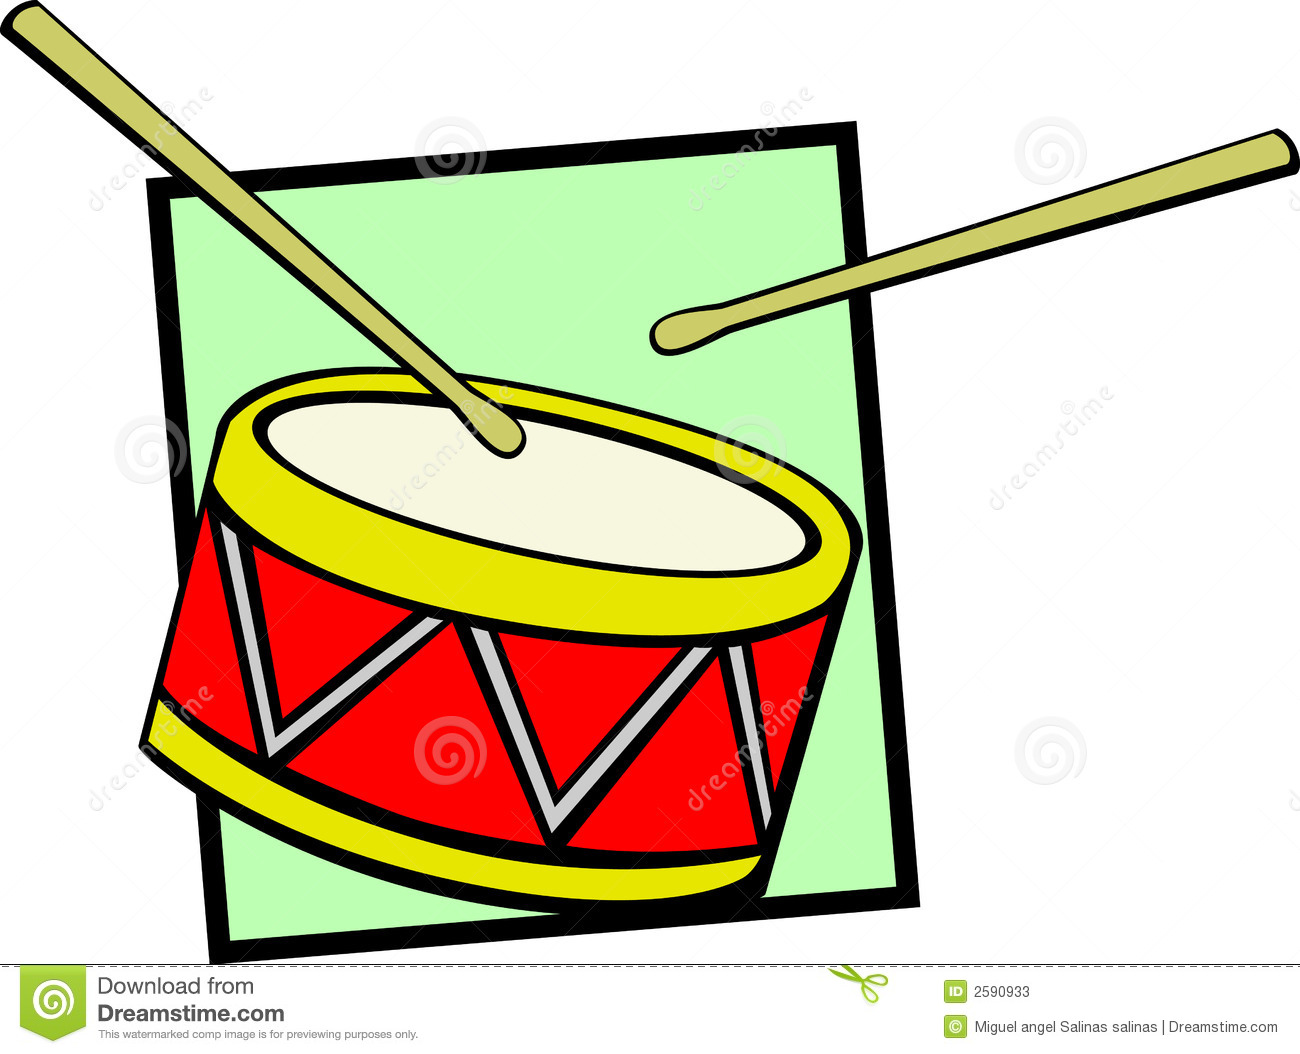 Marching Snare Drum Clip Art Clipart Pan-Marching Snare Drum Clip Art Clipart Panda Free Clipart Images-3